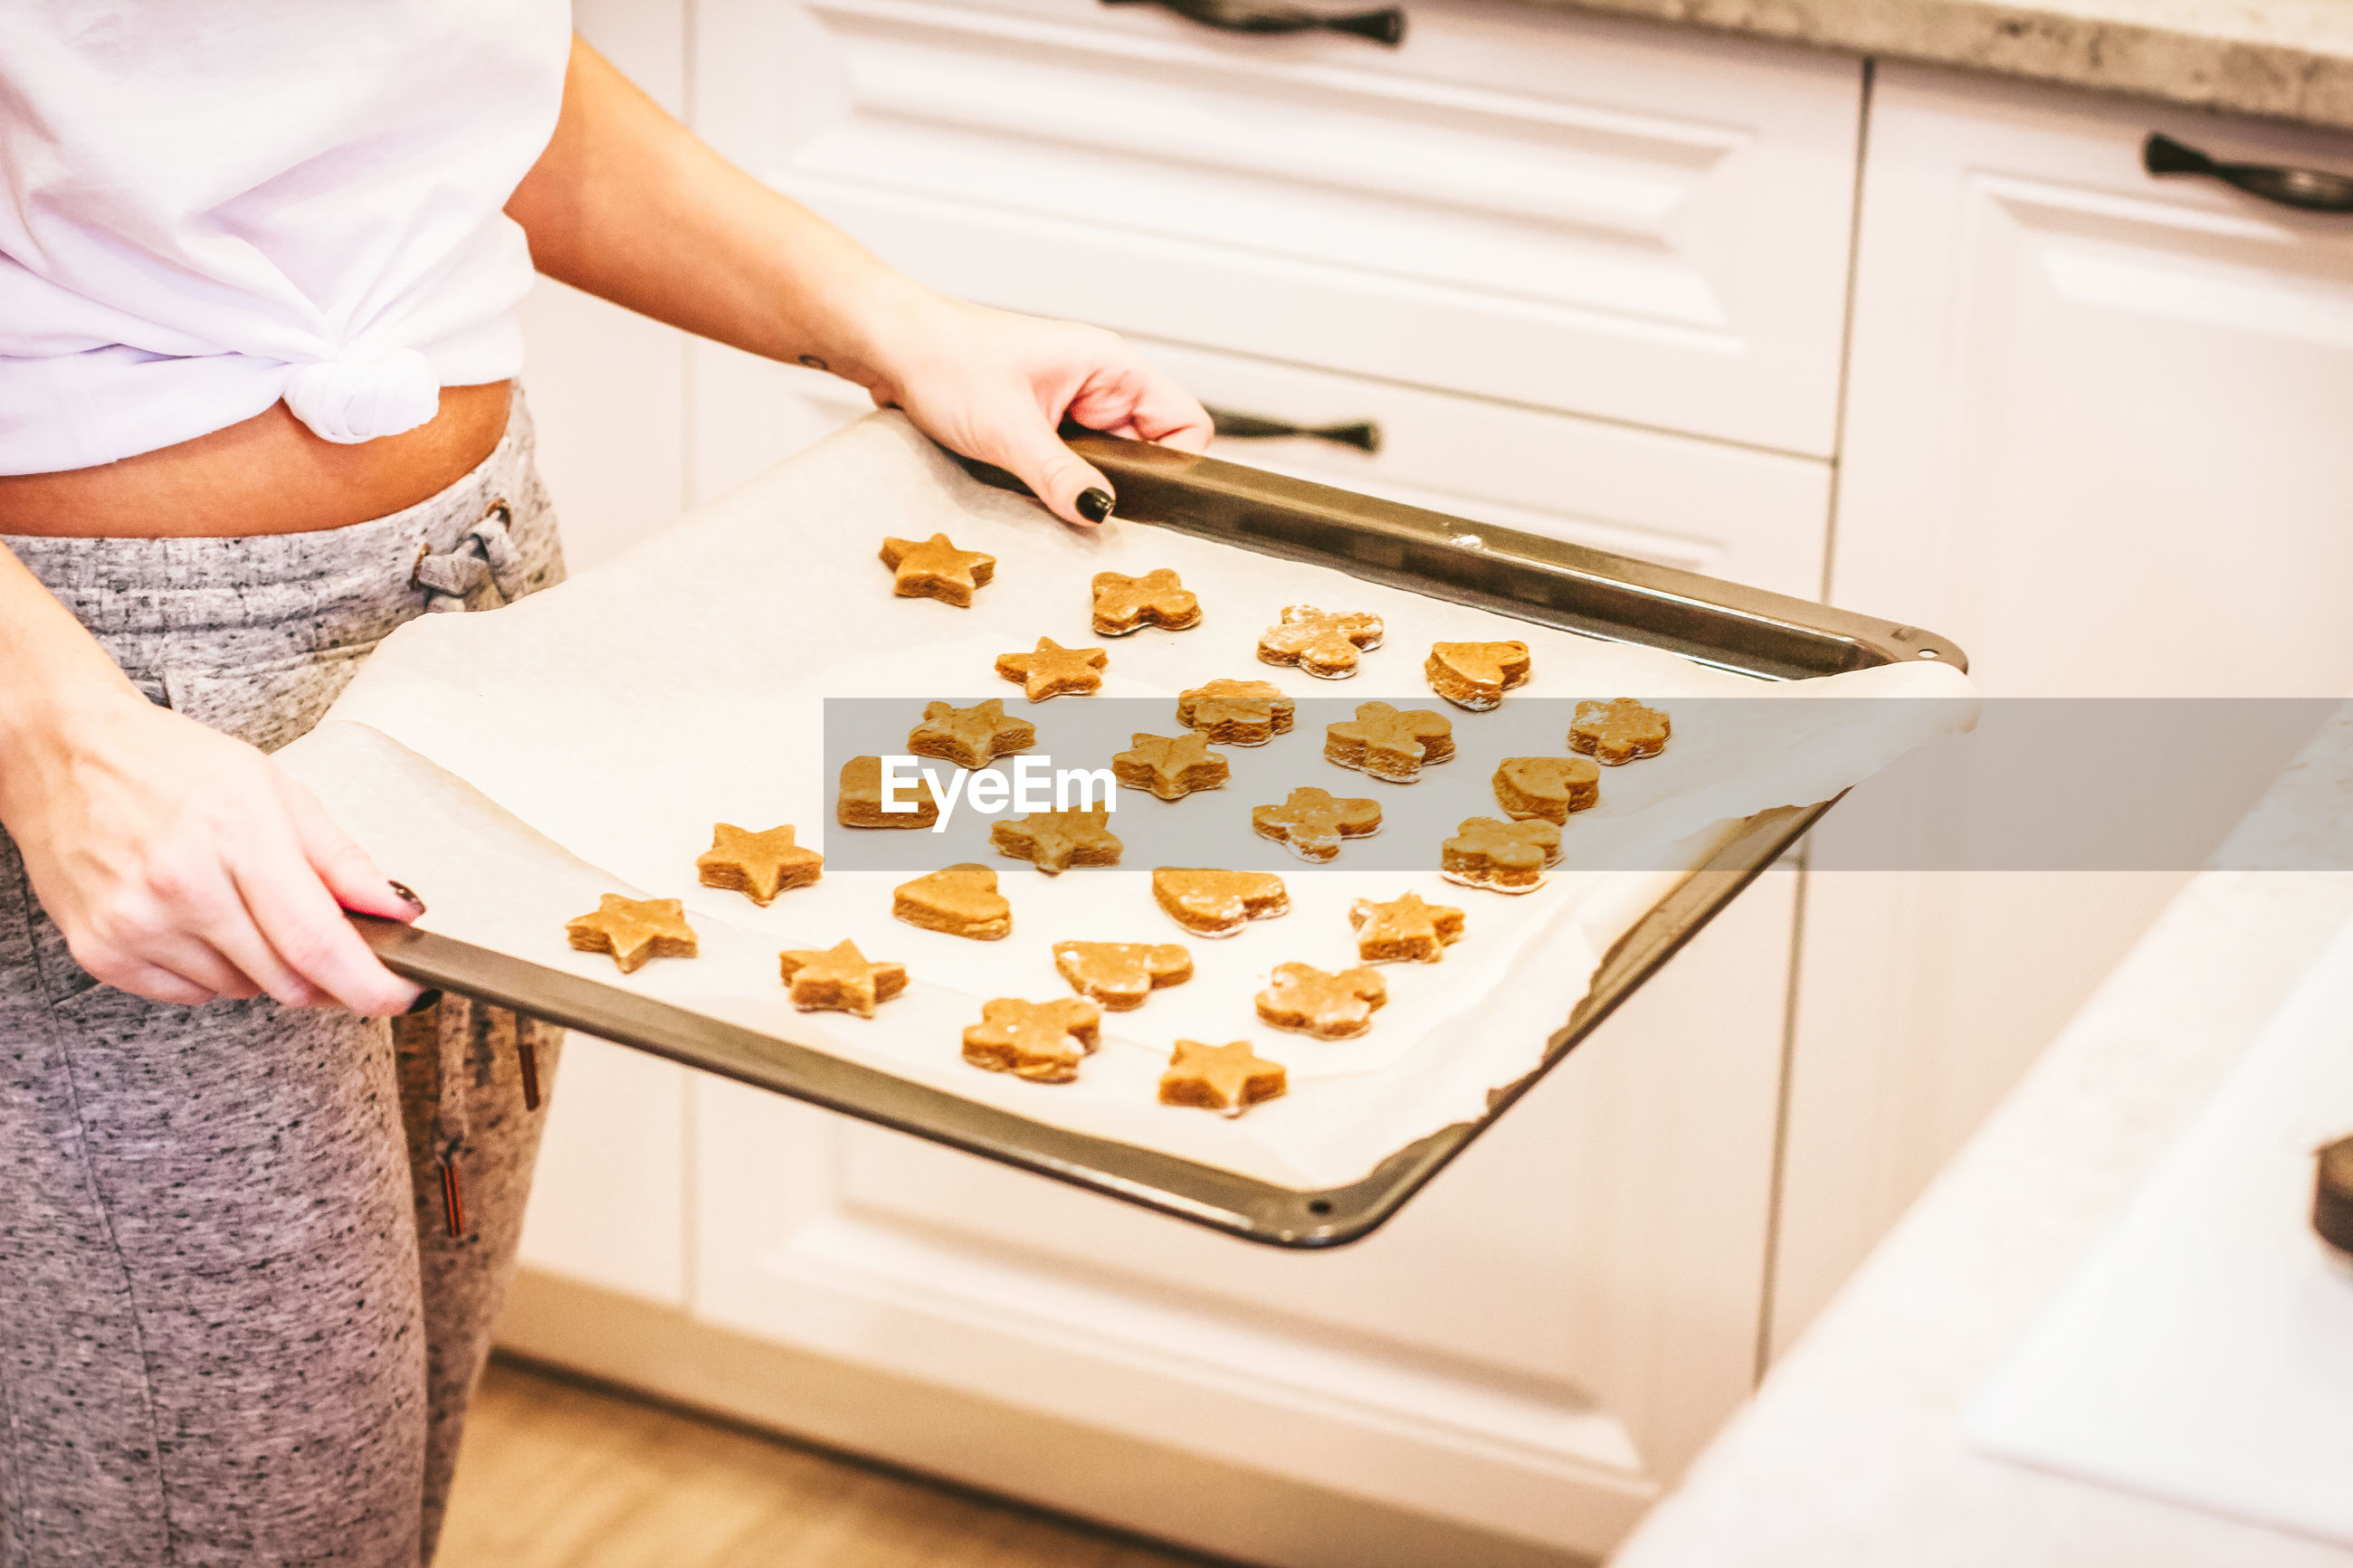 Midsection of woman preparing cookies in kitchen